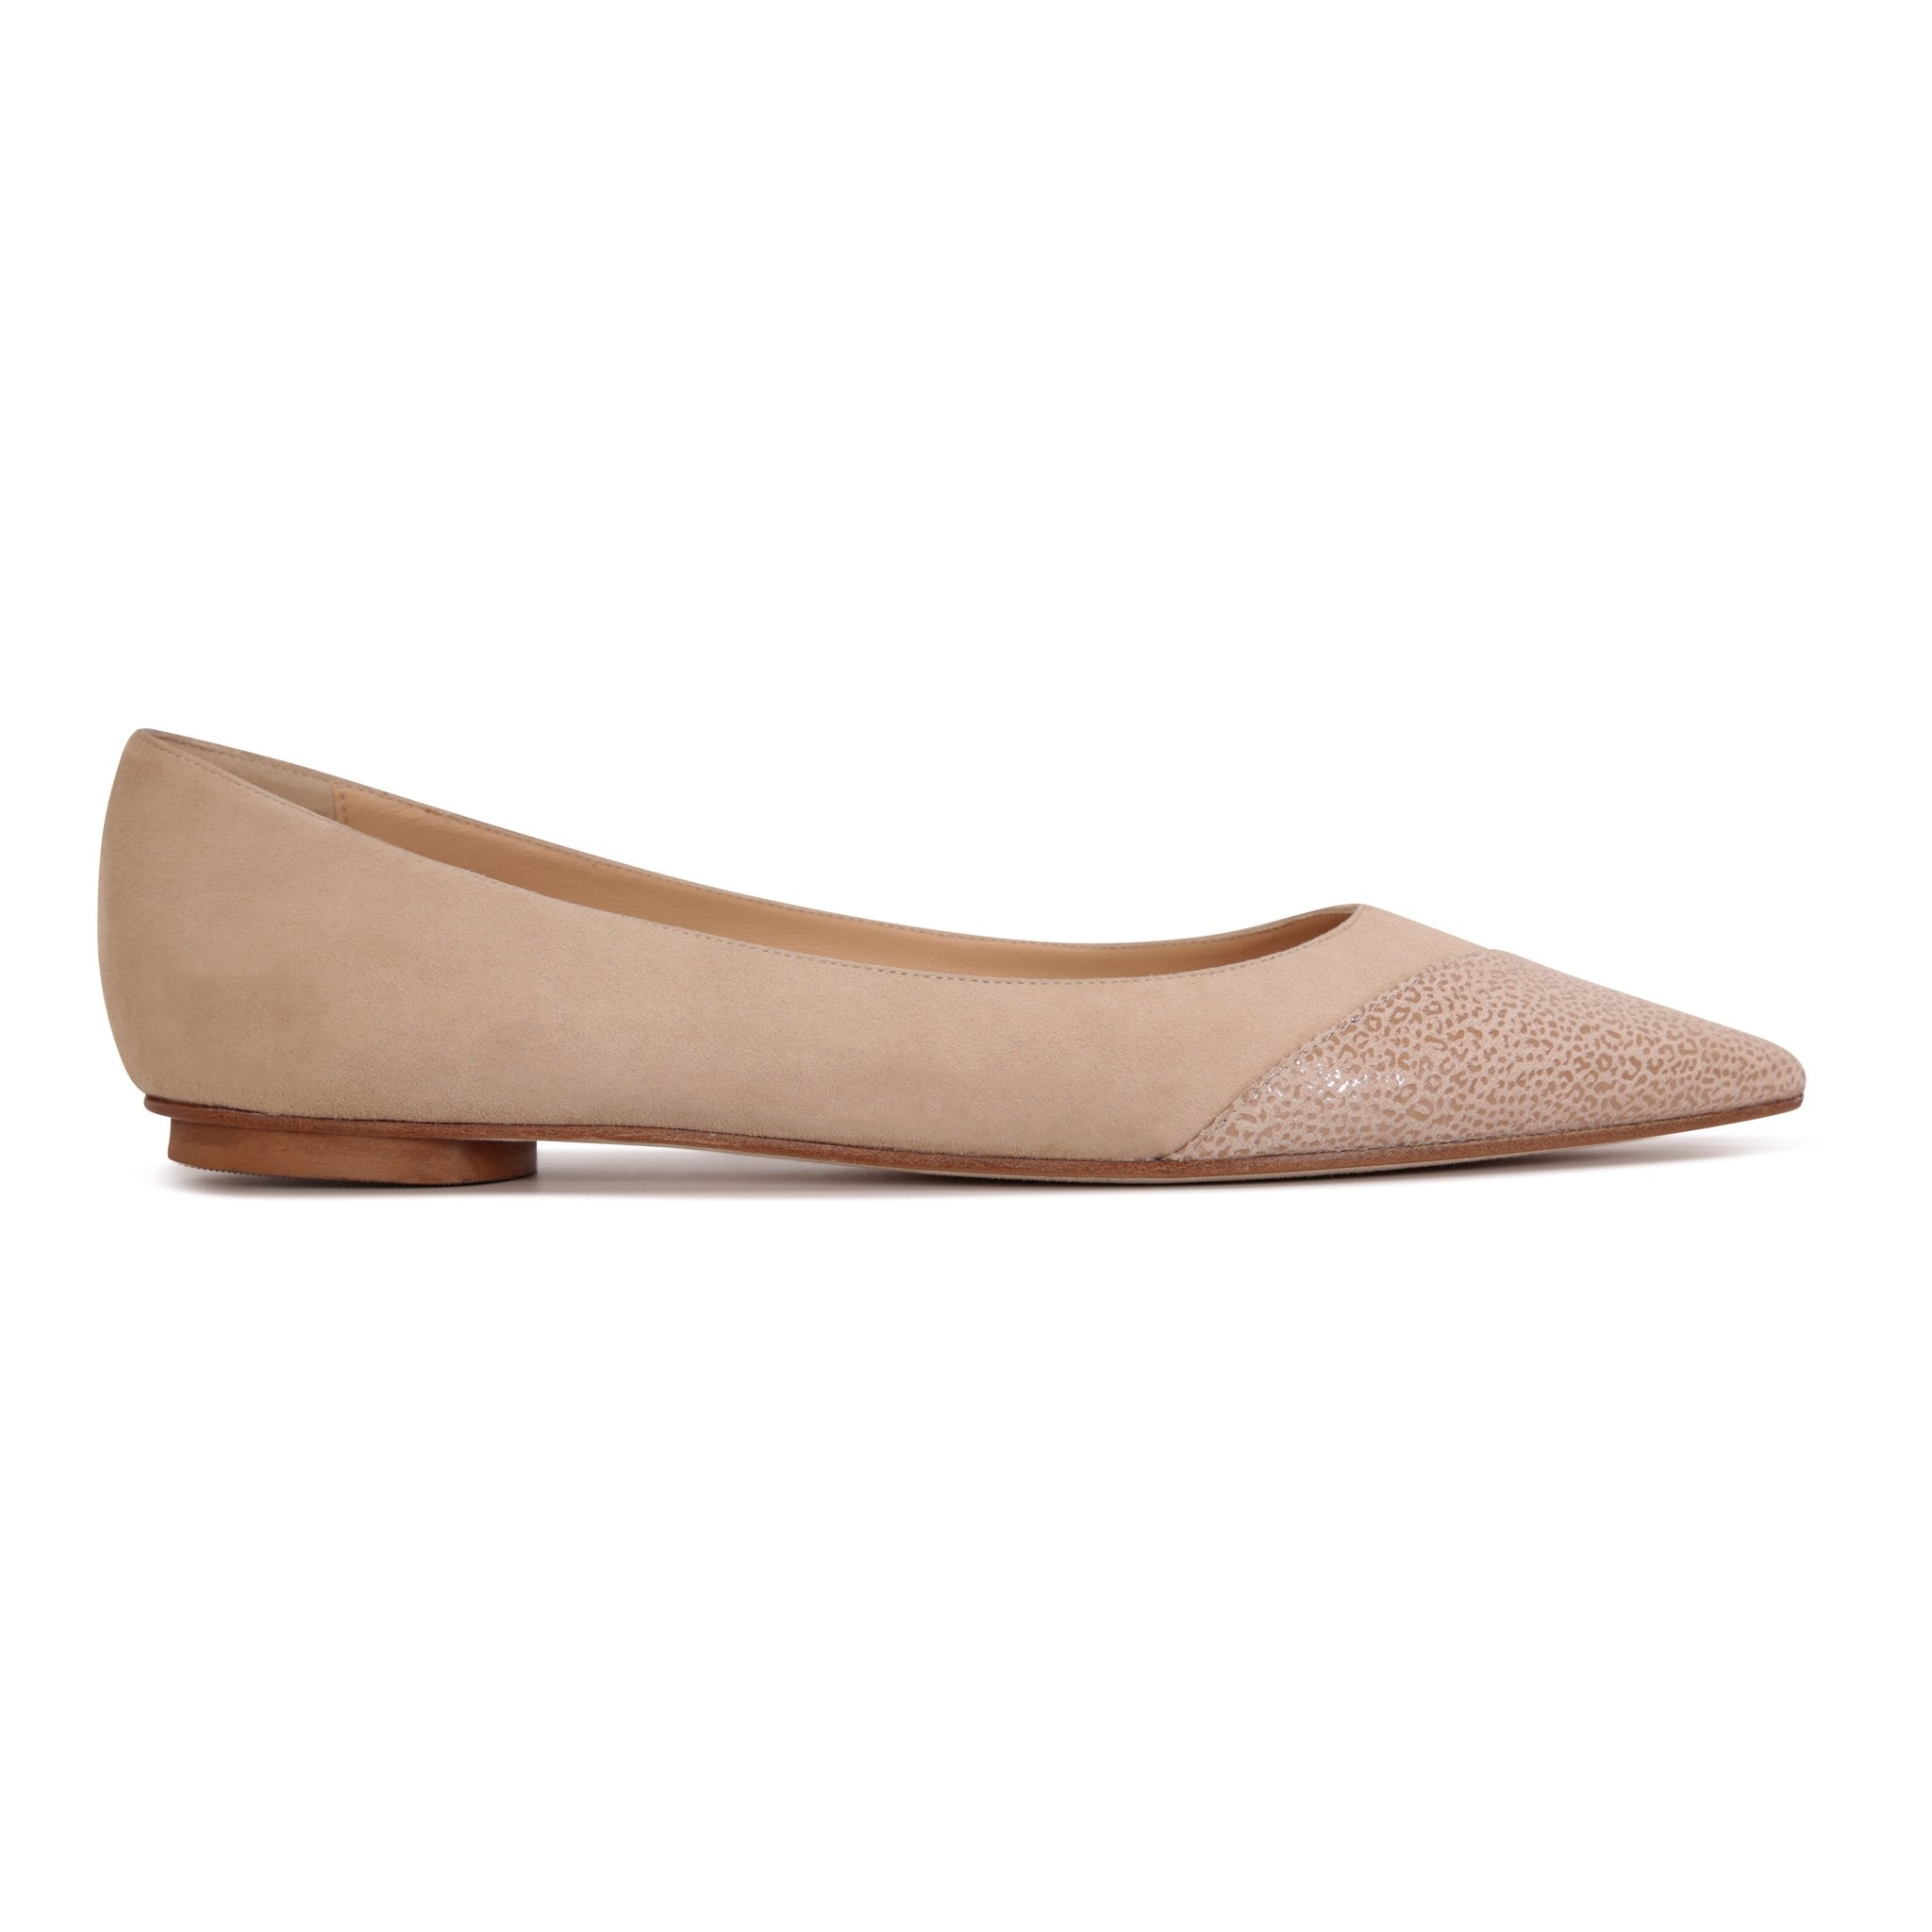 COMO - Velukid Tan + Asymmetrical Toe Savannah, VIAJIYU - Women's Hand Made Sustainable Luxury Shoes. Made in Italy. Made to Order.